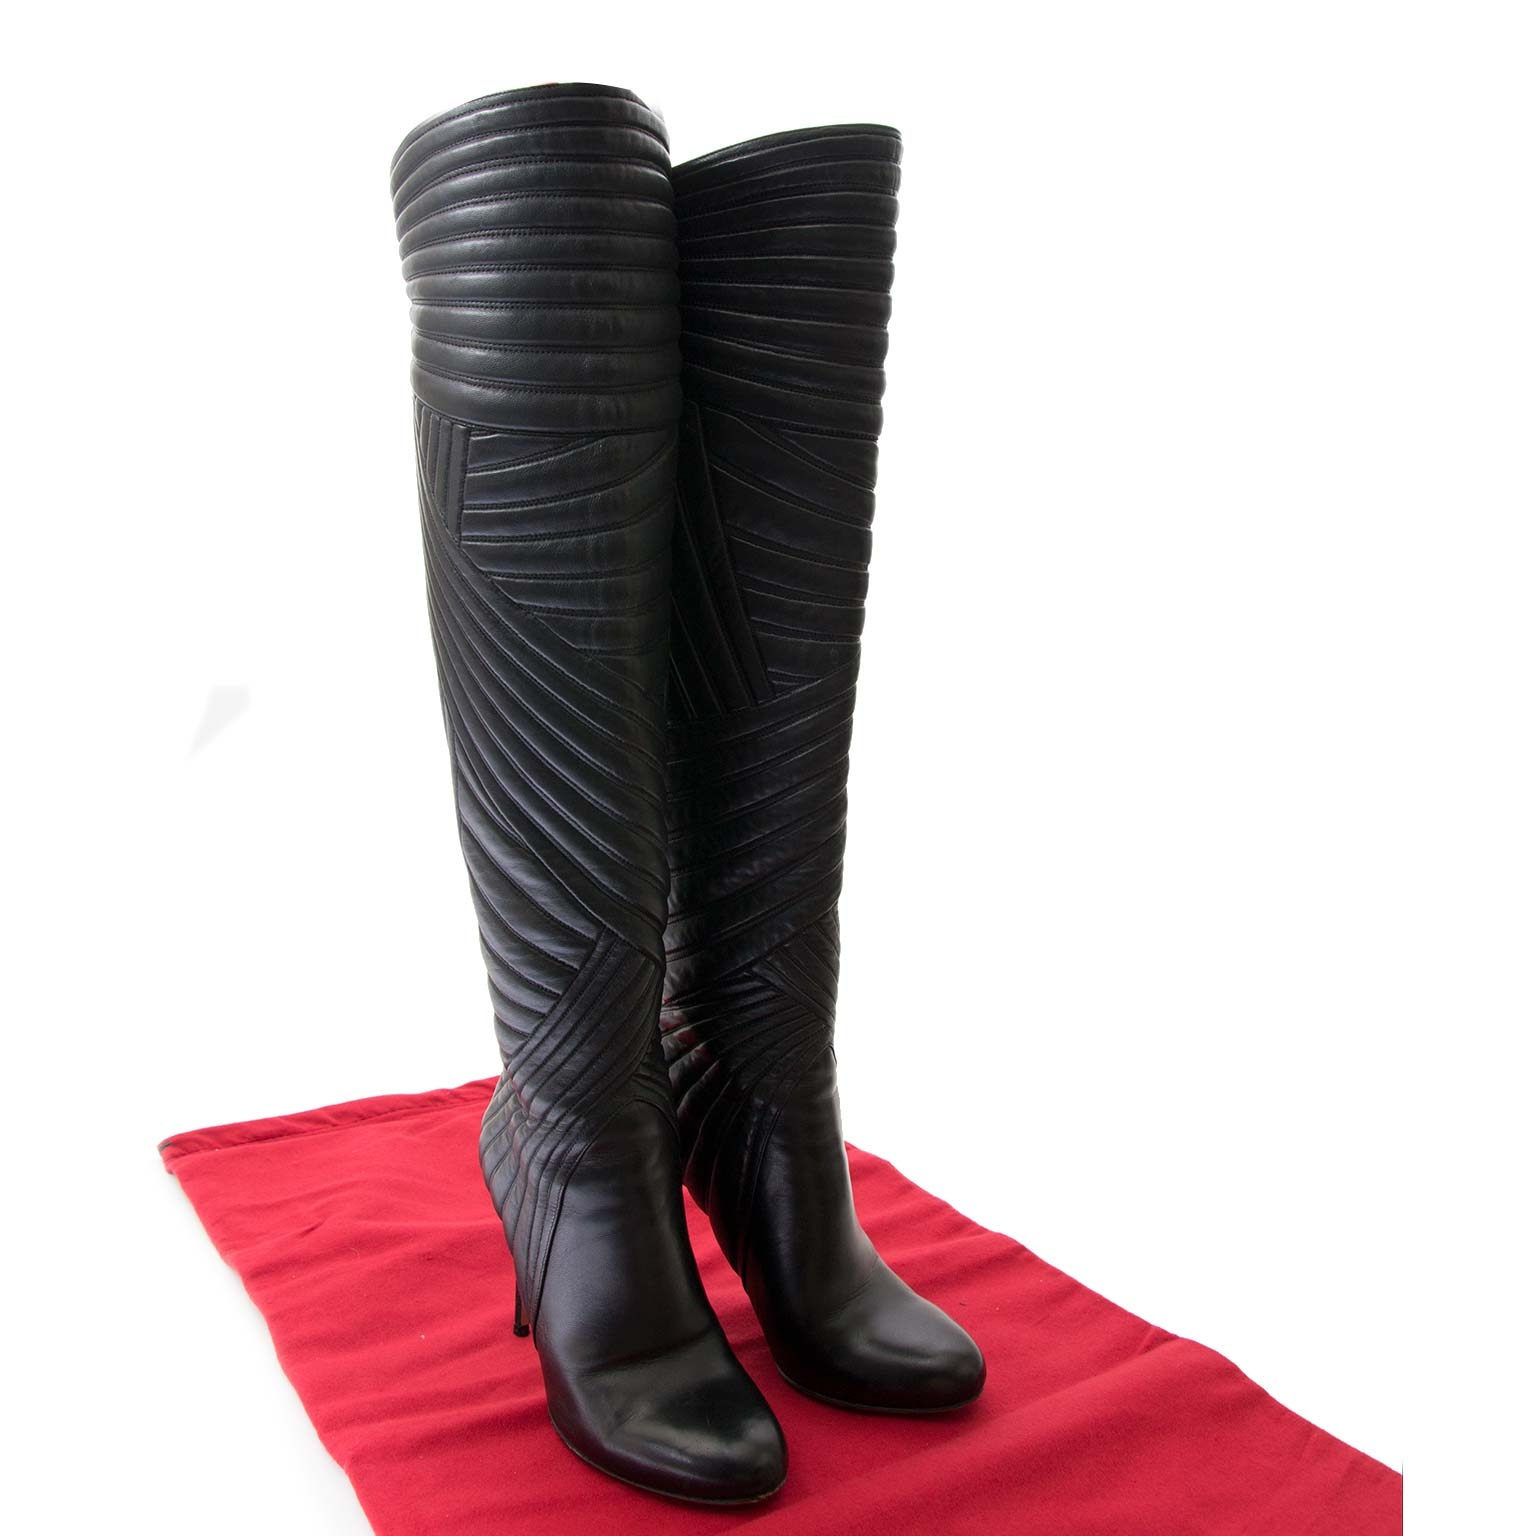 valentino stitched leather knee boots now for sale at labellov vintage fashion webshop belgium